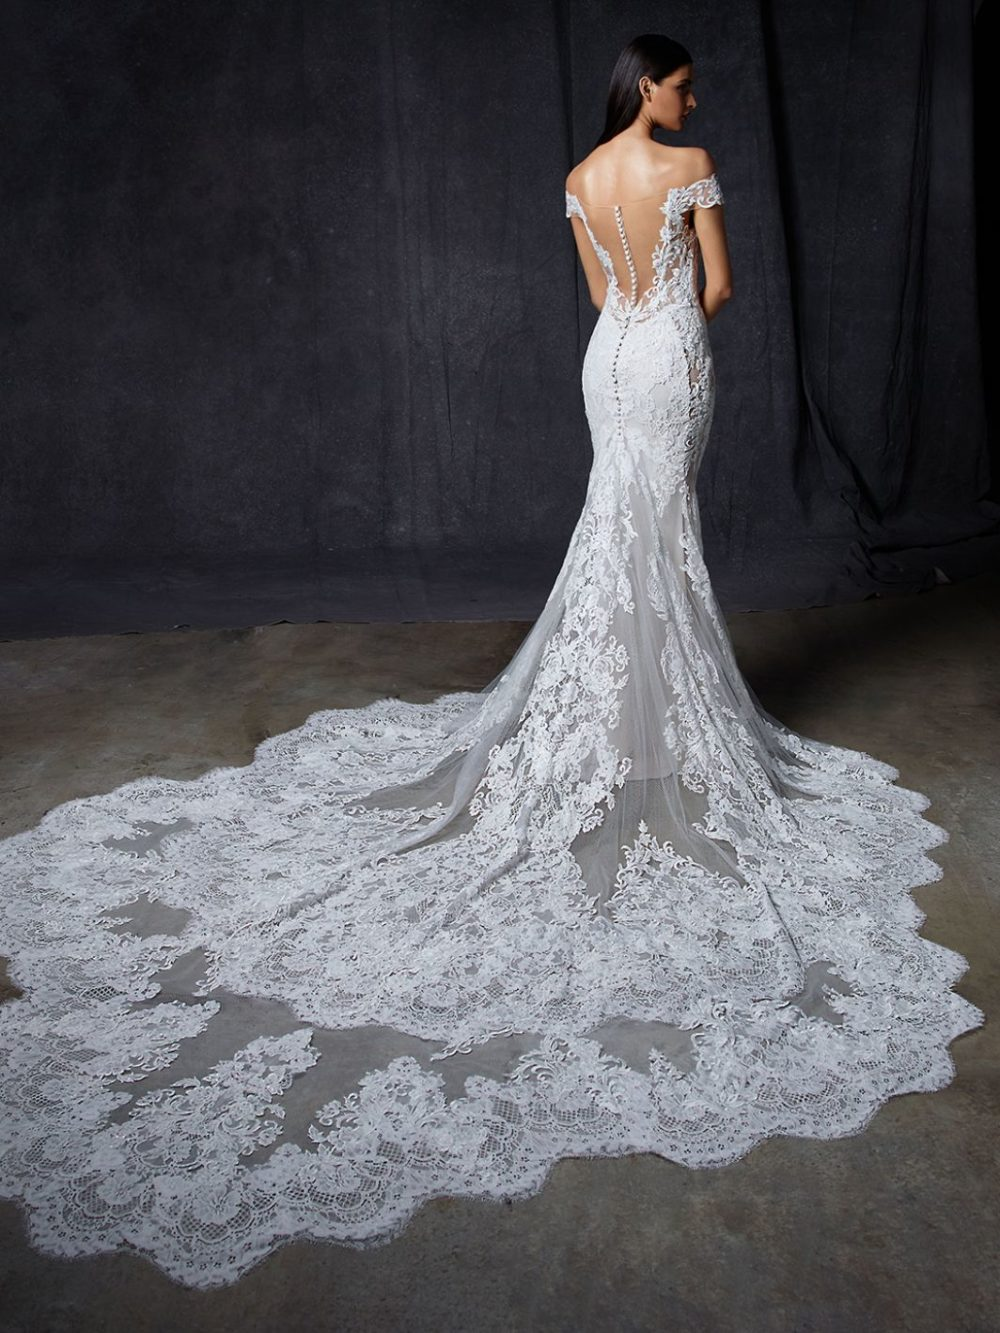 Olive by Enzoani Wedding gown dress back